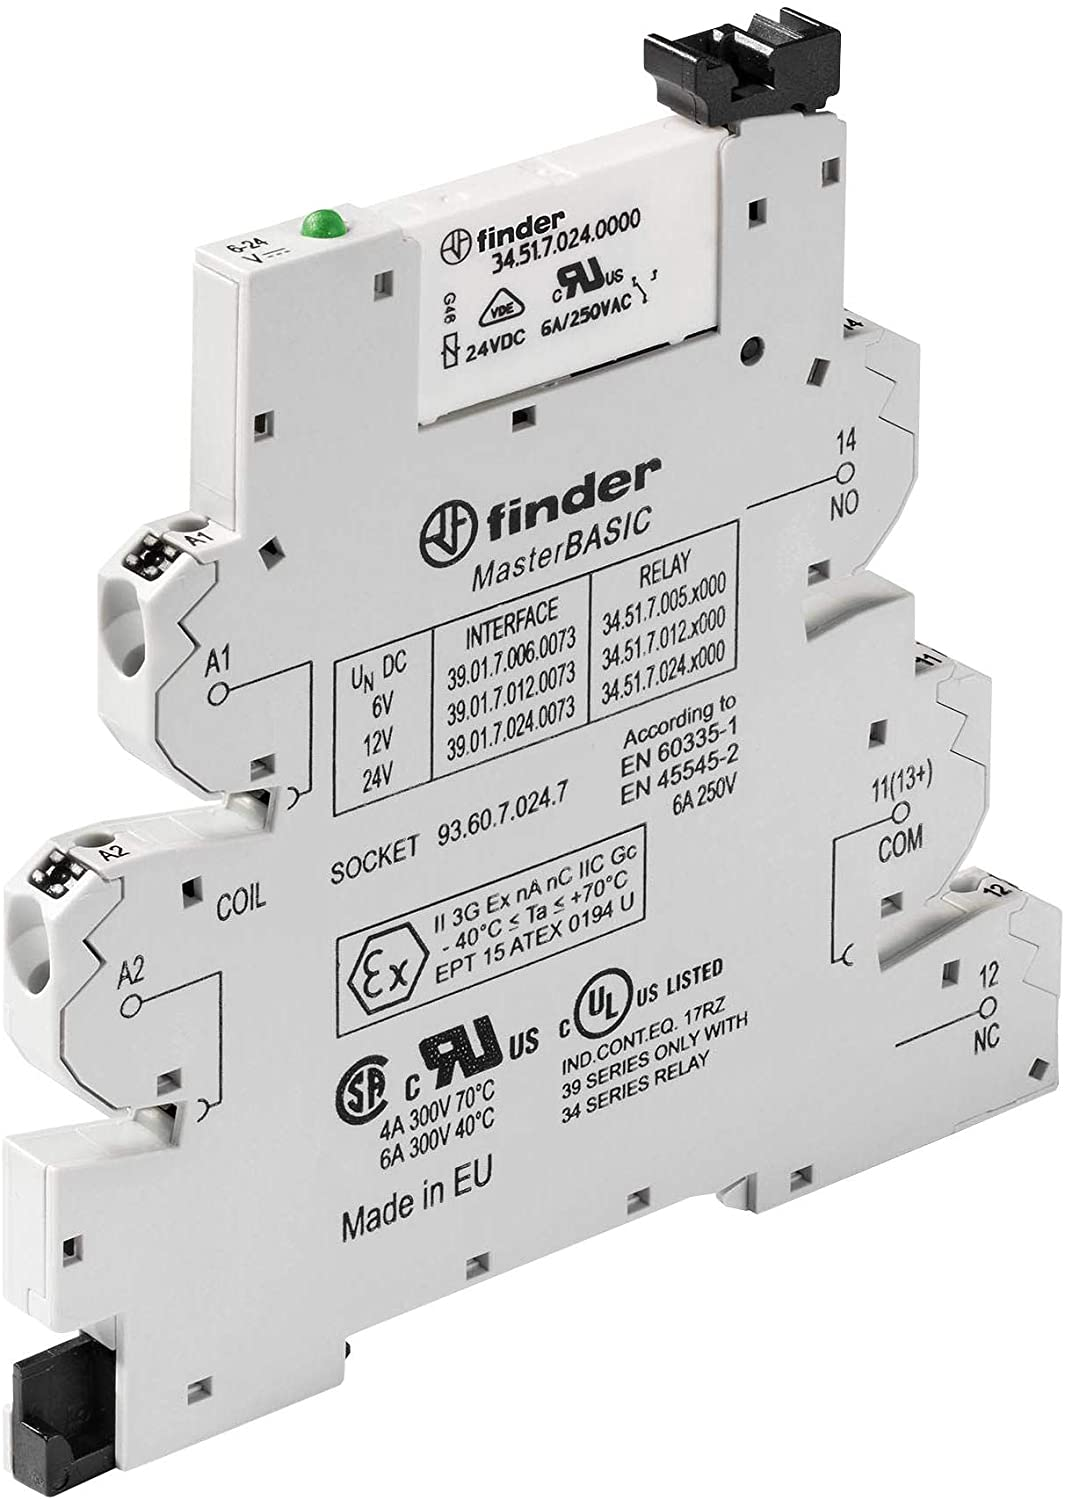 39.11.0.024.0073 - POWER RELAY, SPDT, 6A, 250VAC, DIN RAIL (Pack of 2) (39.11.0.024.0073)